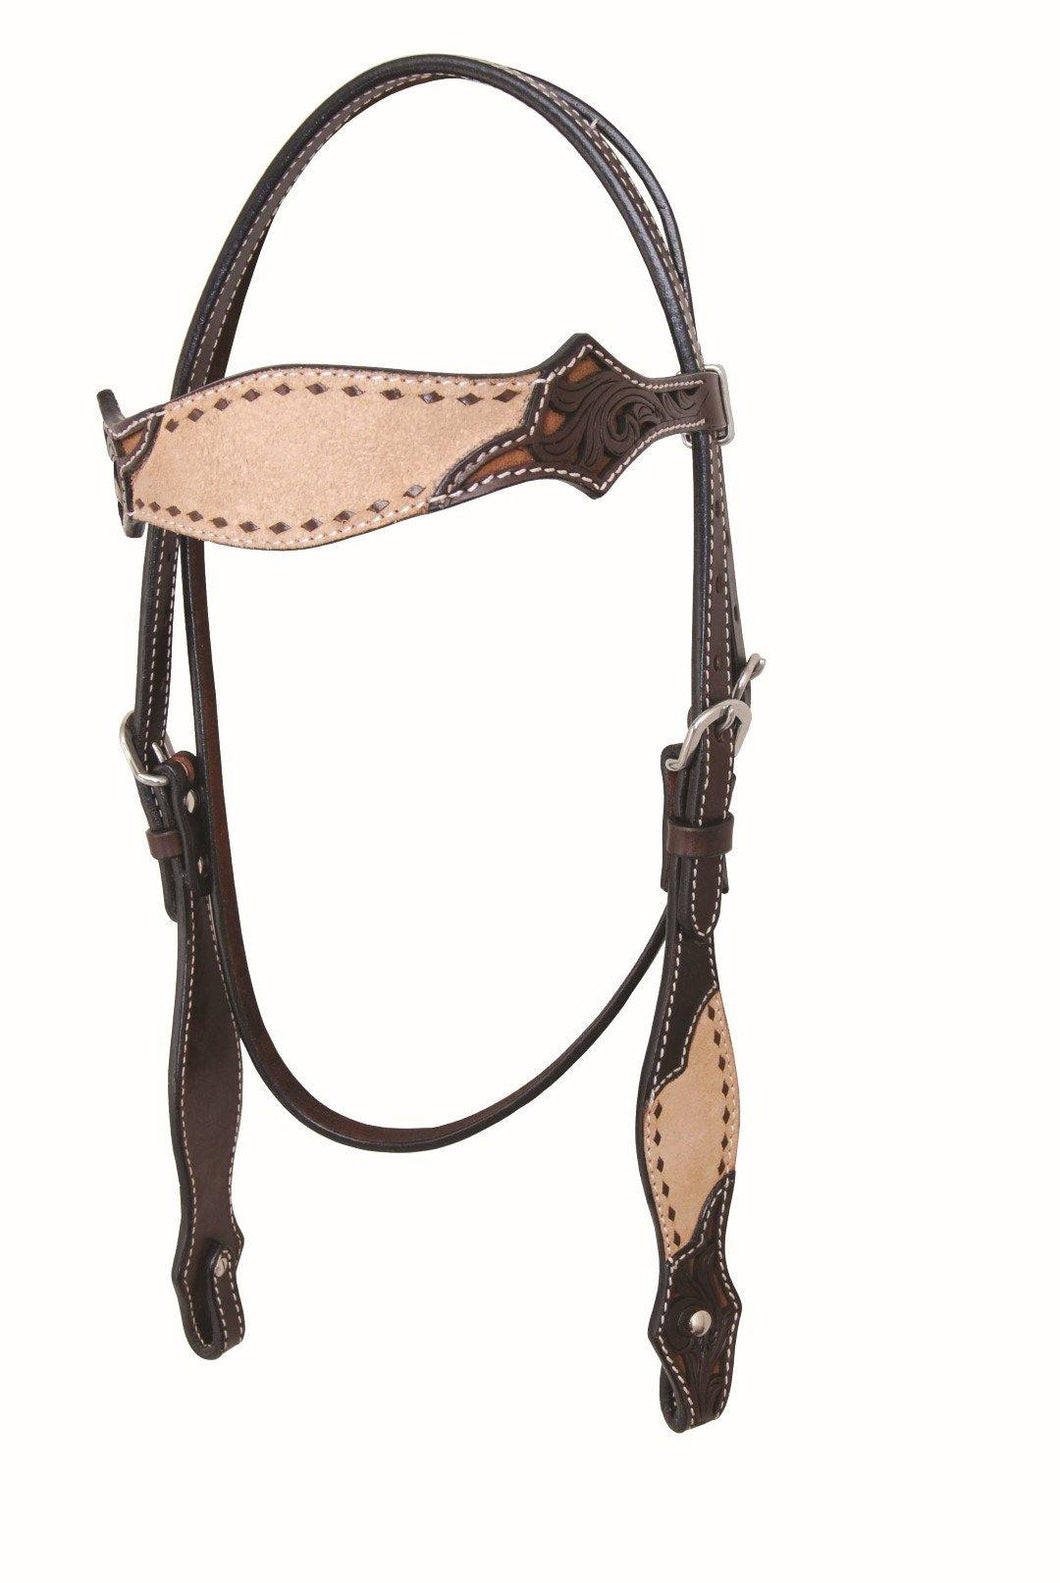 Rough Out & Buckstitch Browband Headstall